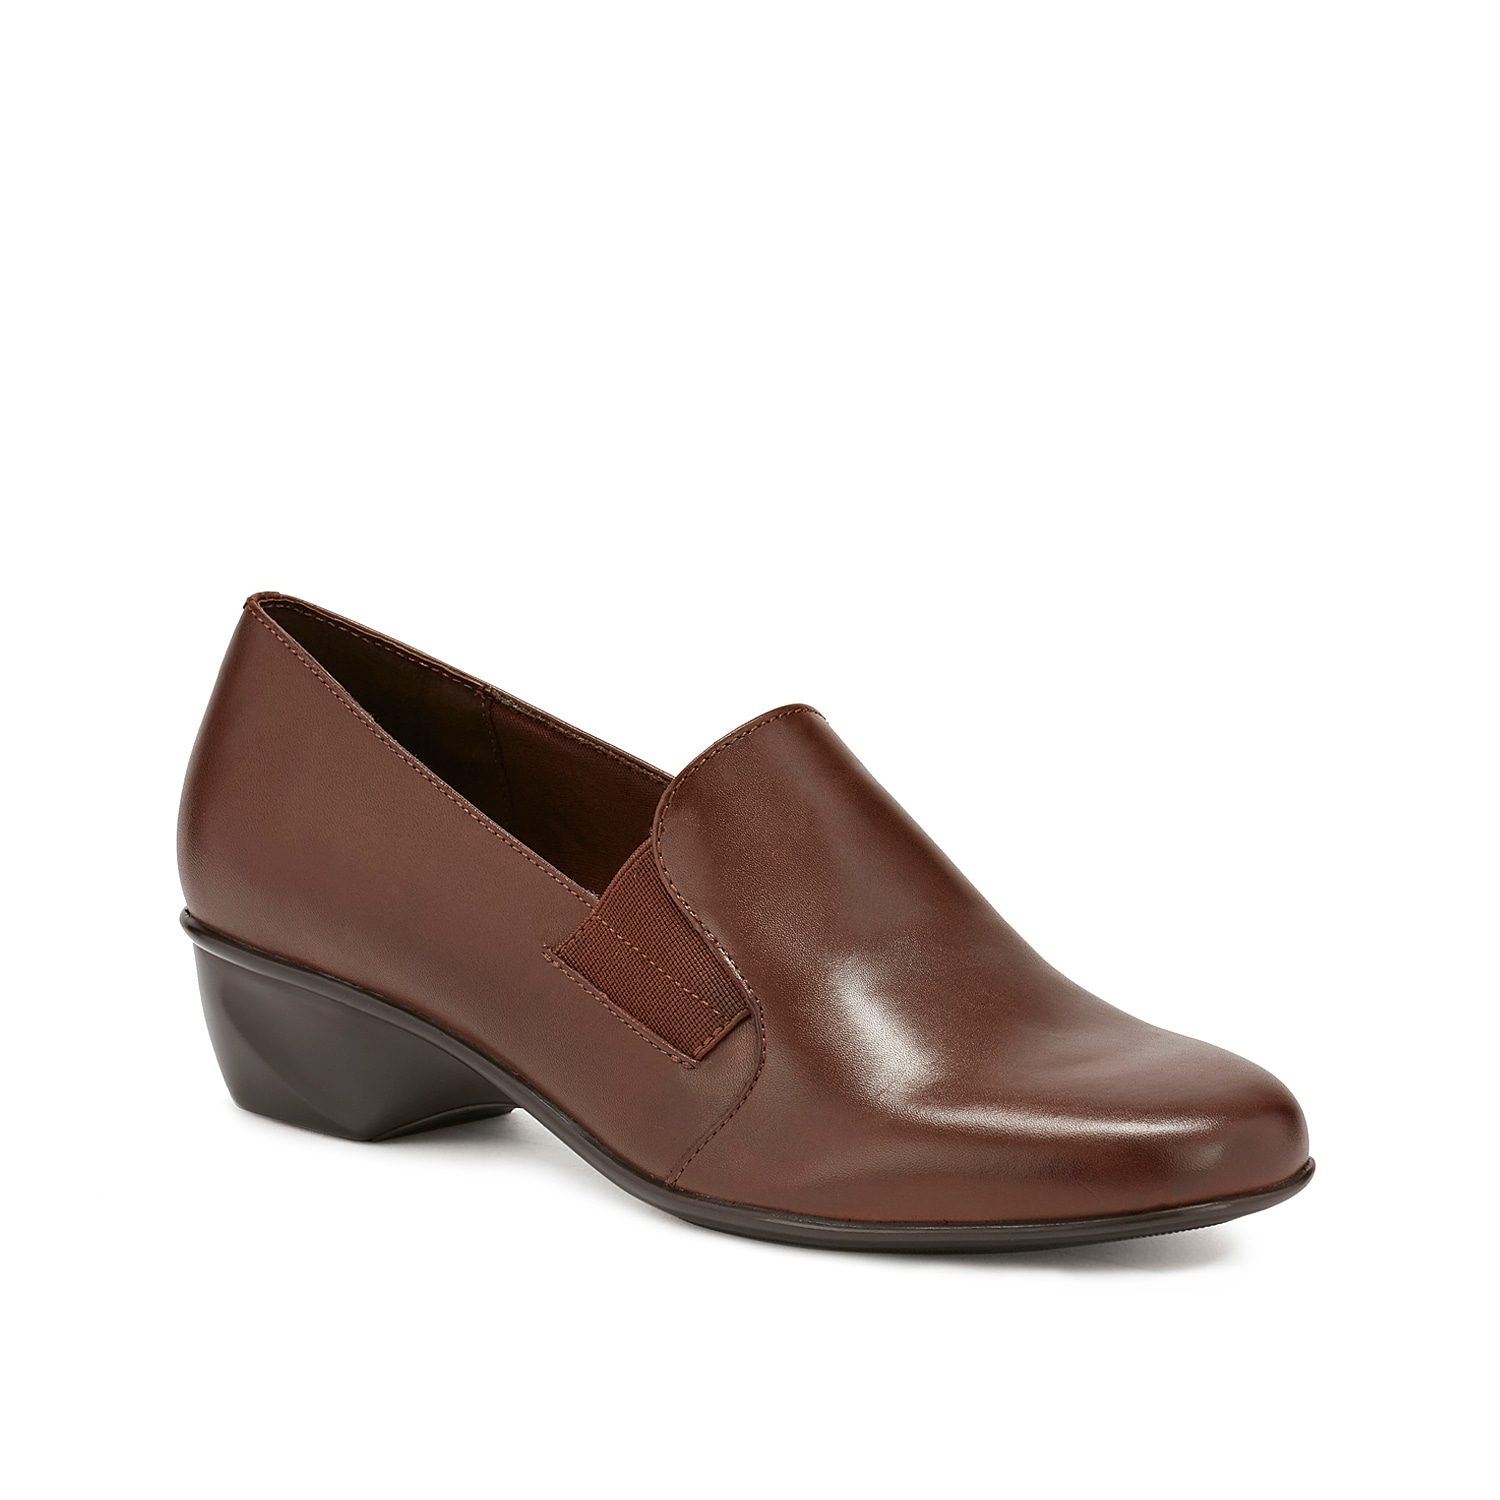 Unrivalled fashion takes on practical design in the Walking Cradles Teri slip-on. Featuring a textured leather upper, this slip-on offers a snug fit with its double elastic side gores and flexible unit bottom.